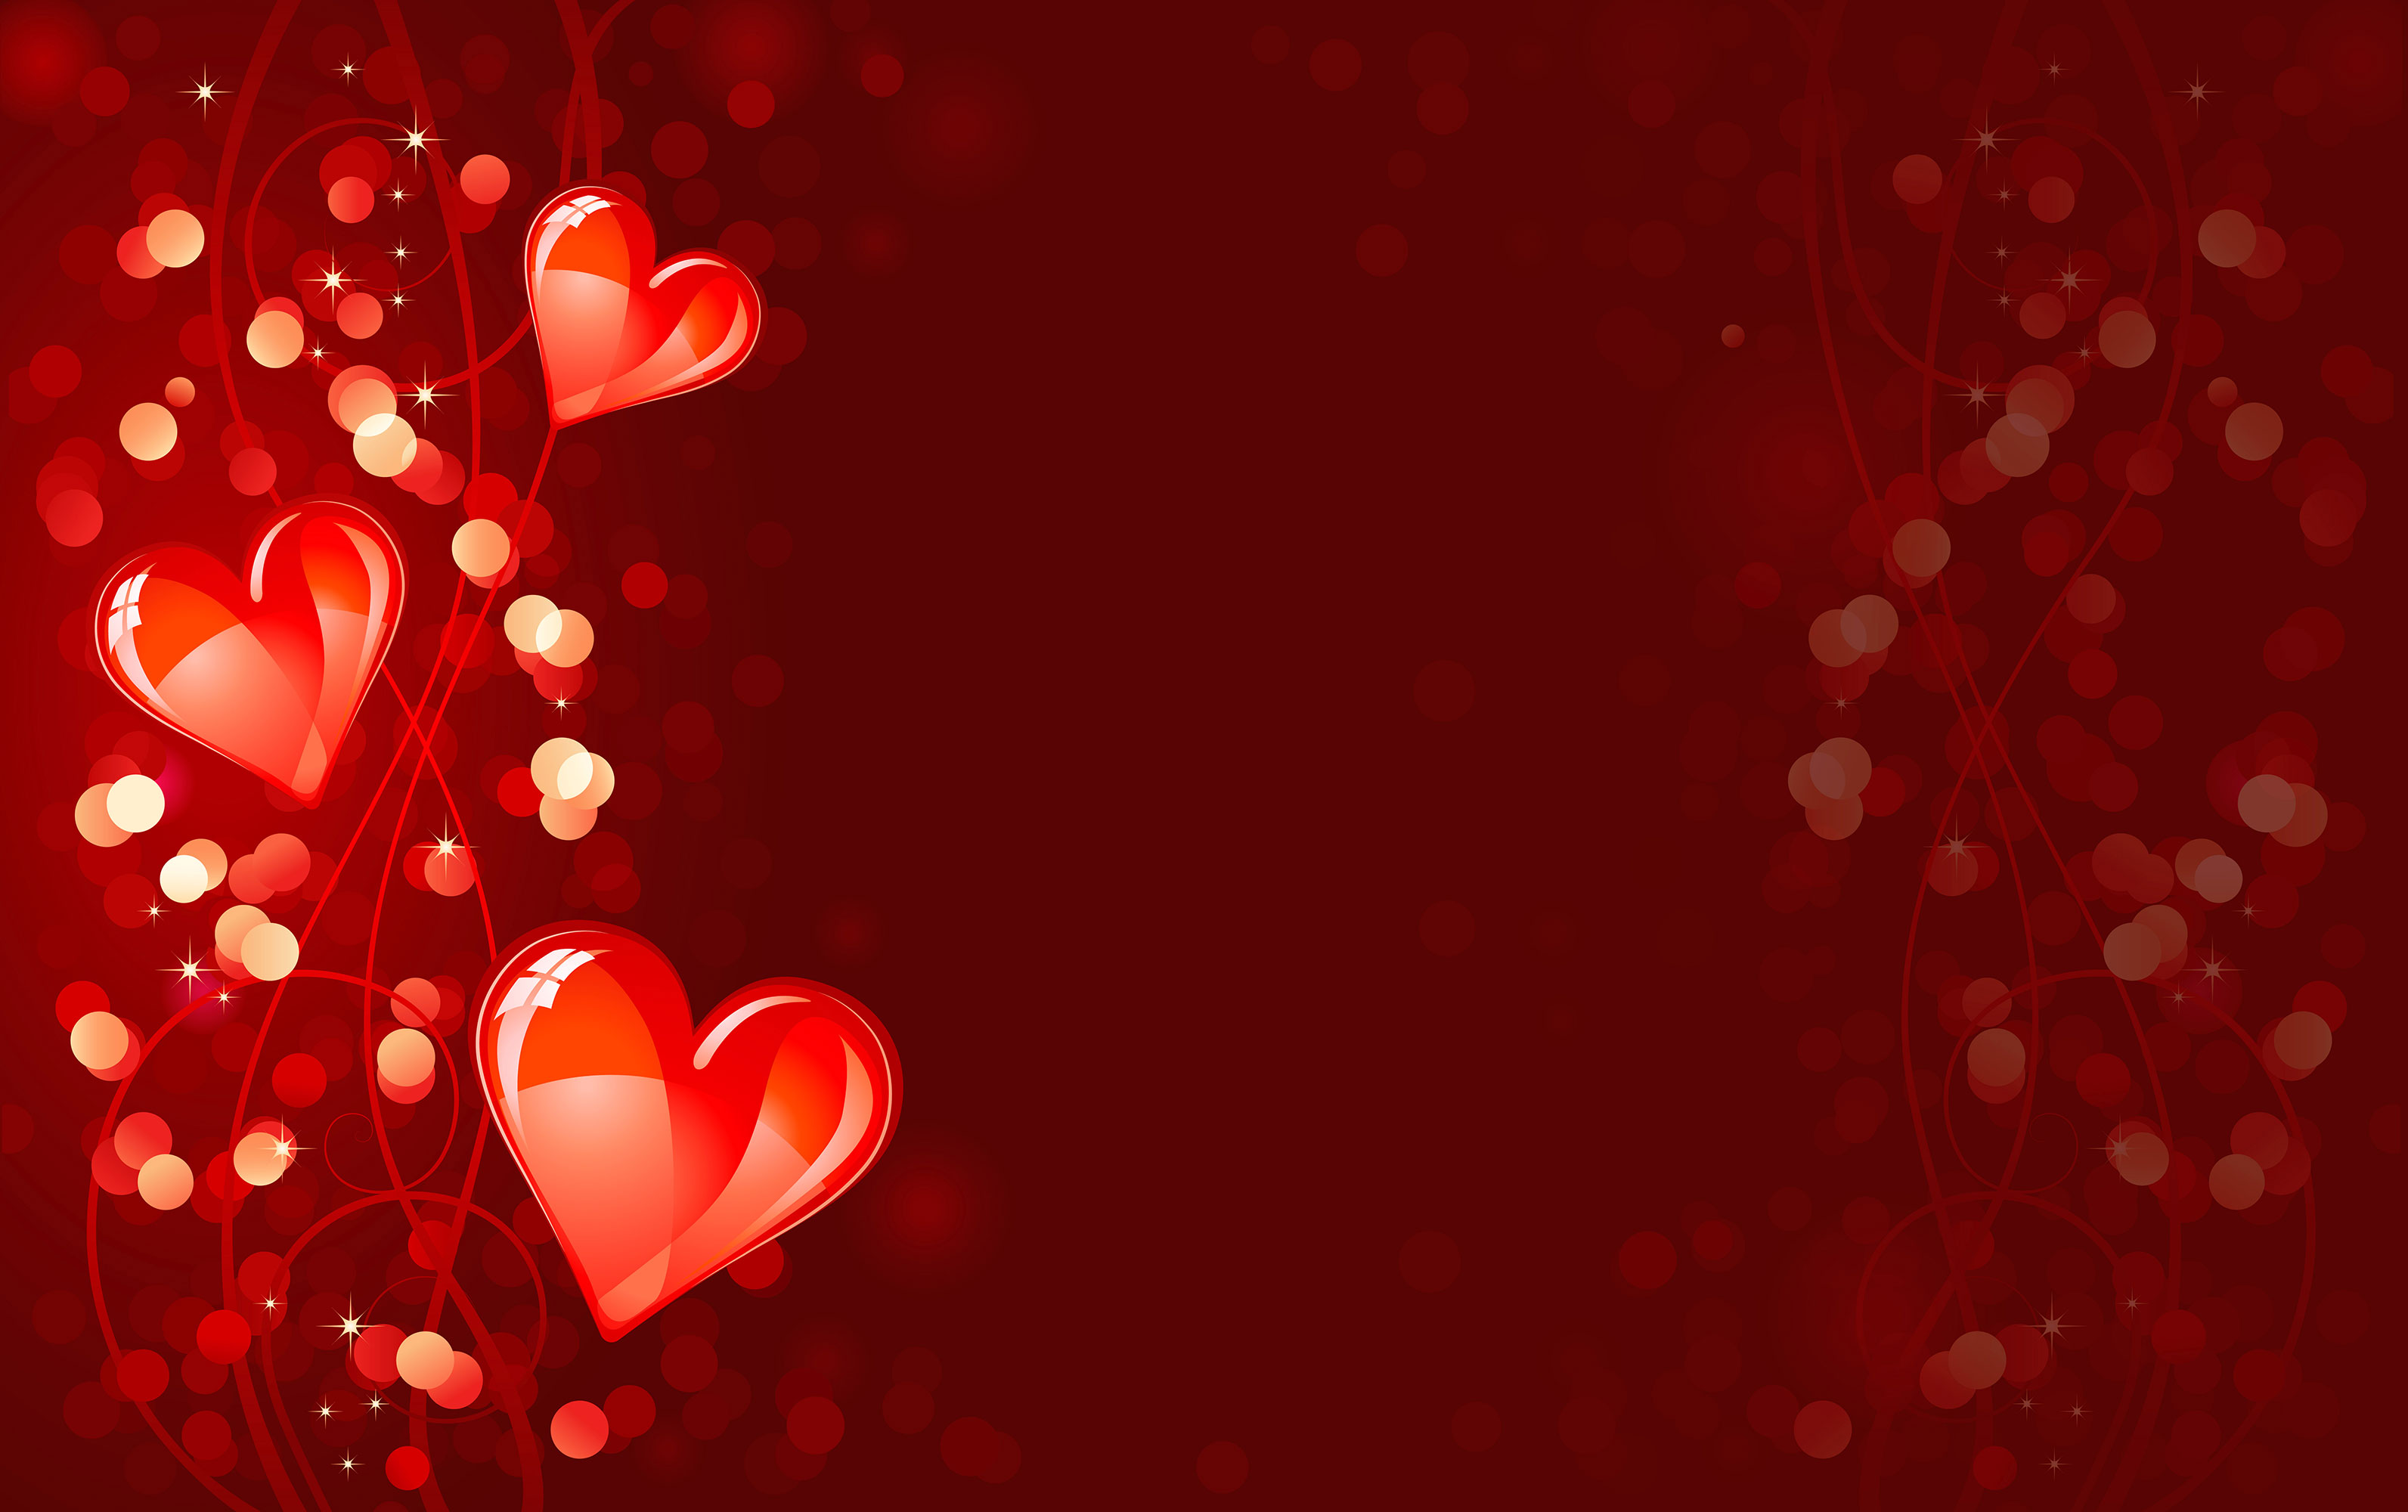 Love Theme Wallpaper In Hd : Background Wallpapers - Page 15